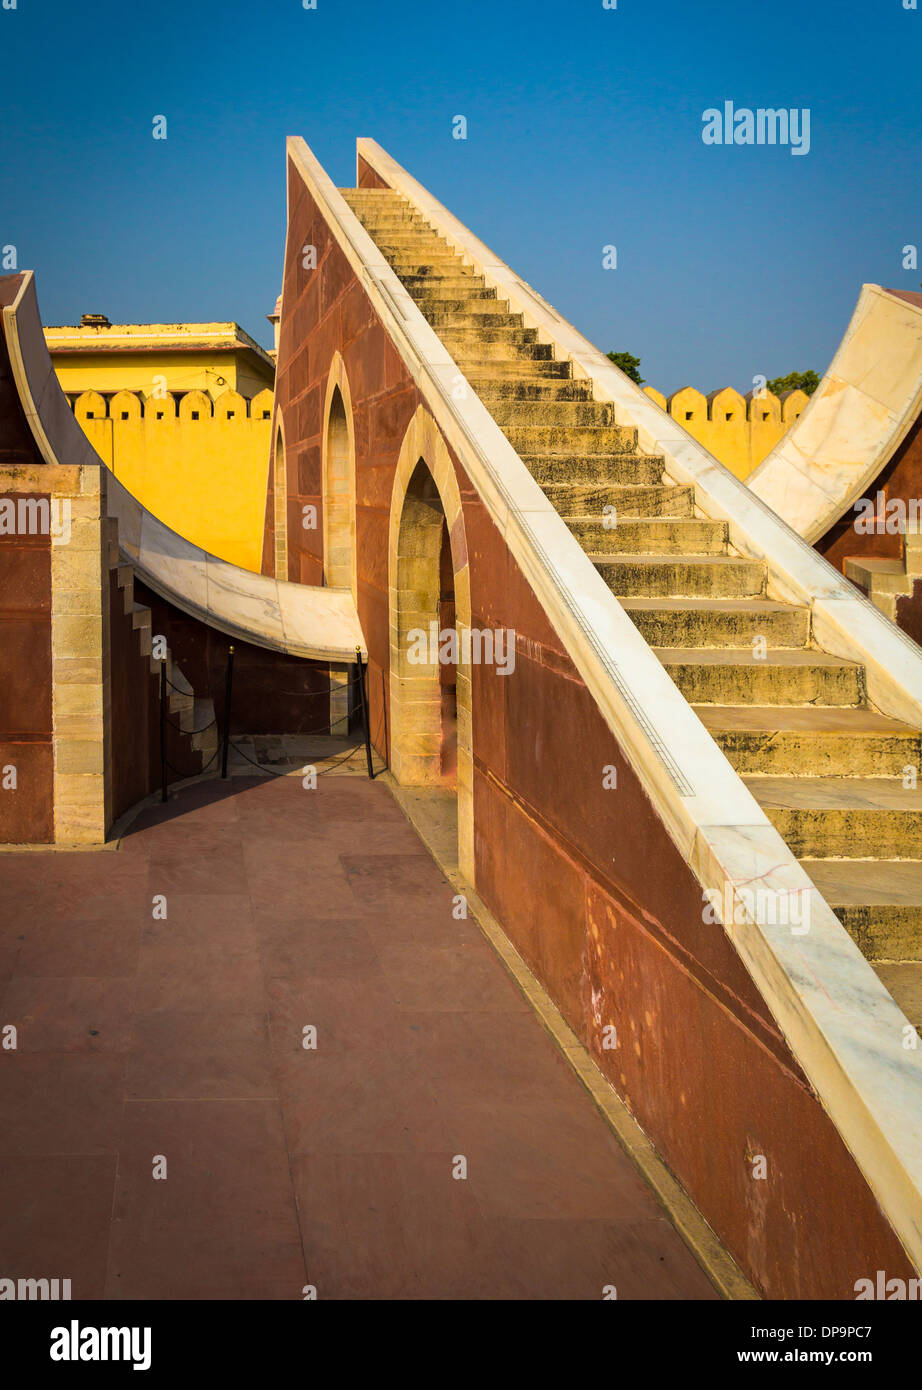 Le Jantar Mantar est une collection d'instruments astronomiques d'architecture à Jaipur, Inde Photo Stock